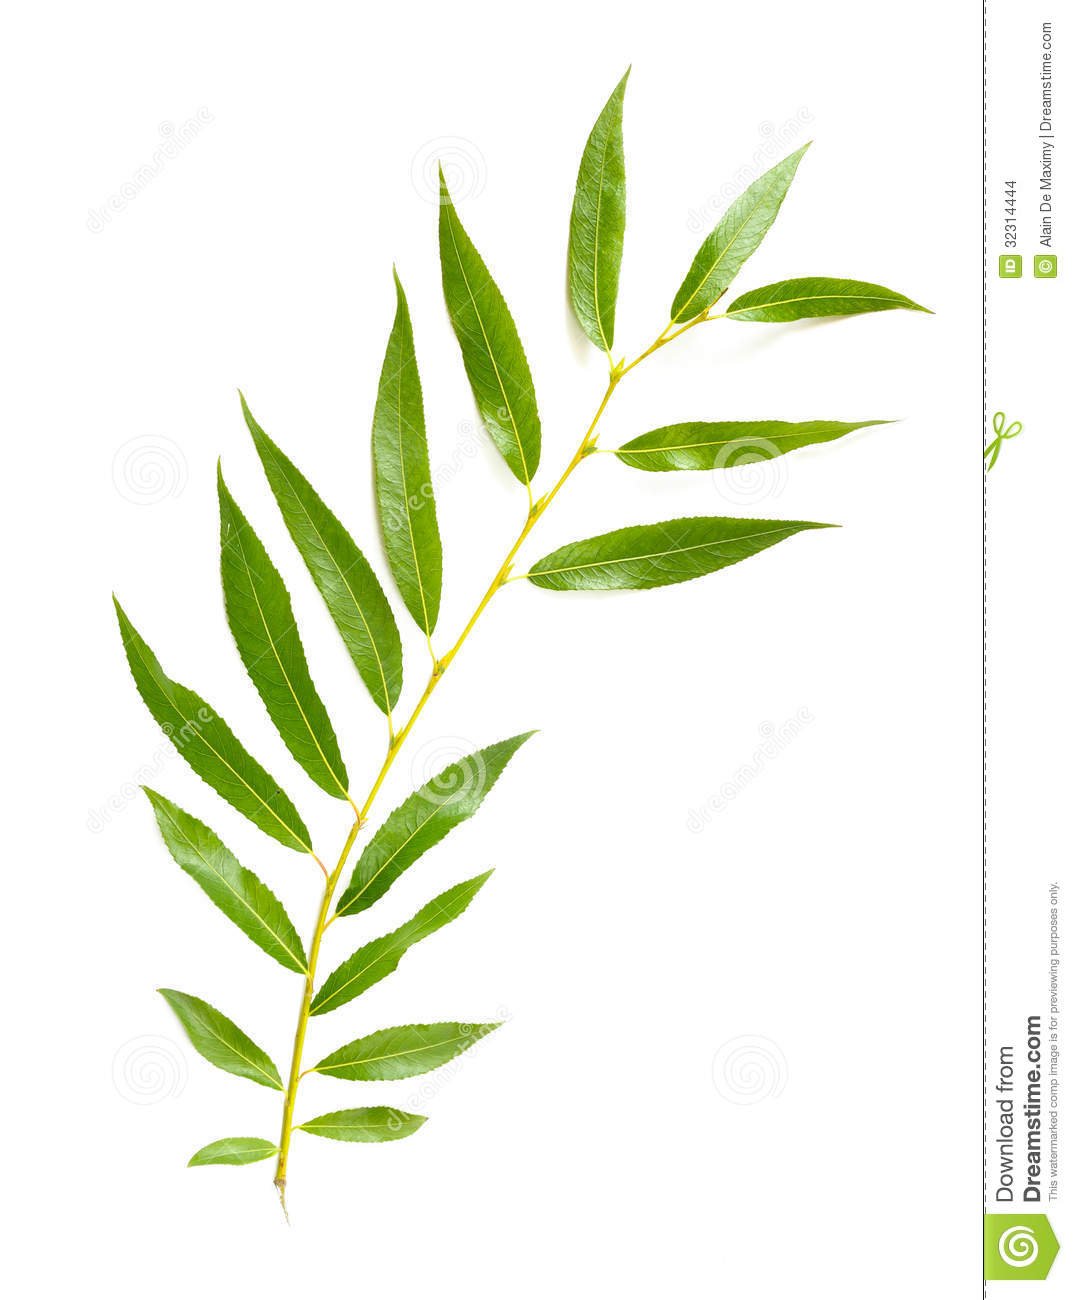 tender green Weeping Willow leaf on white background.